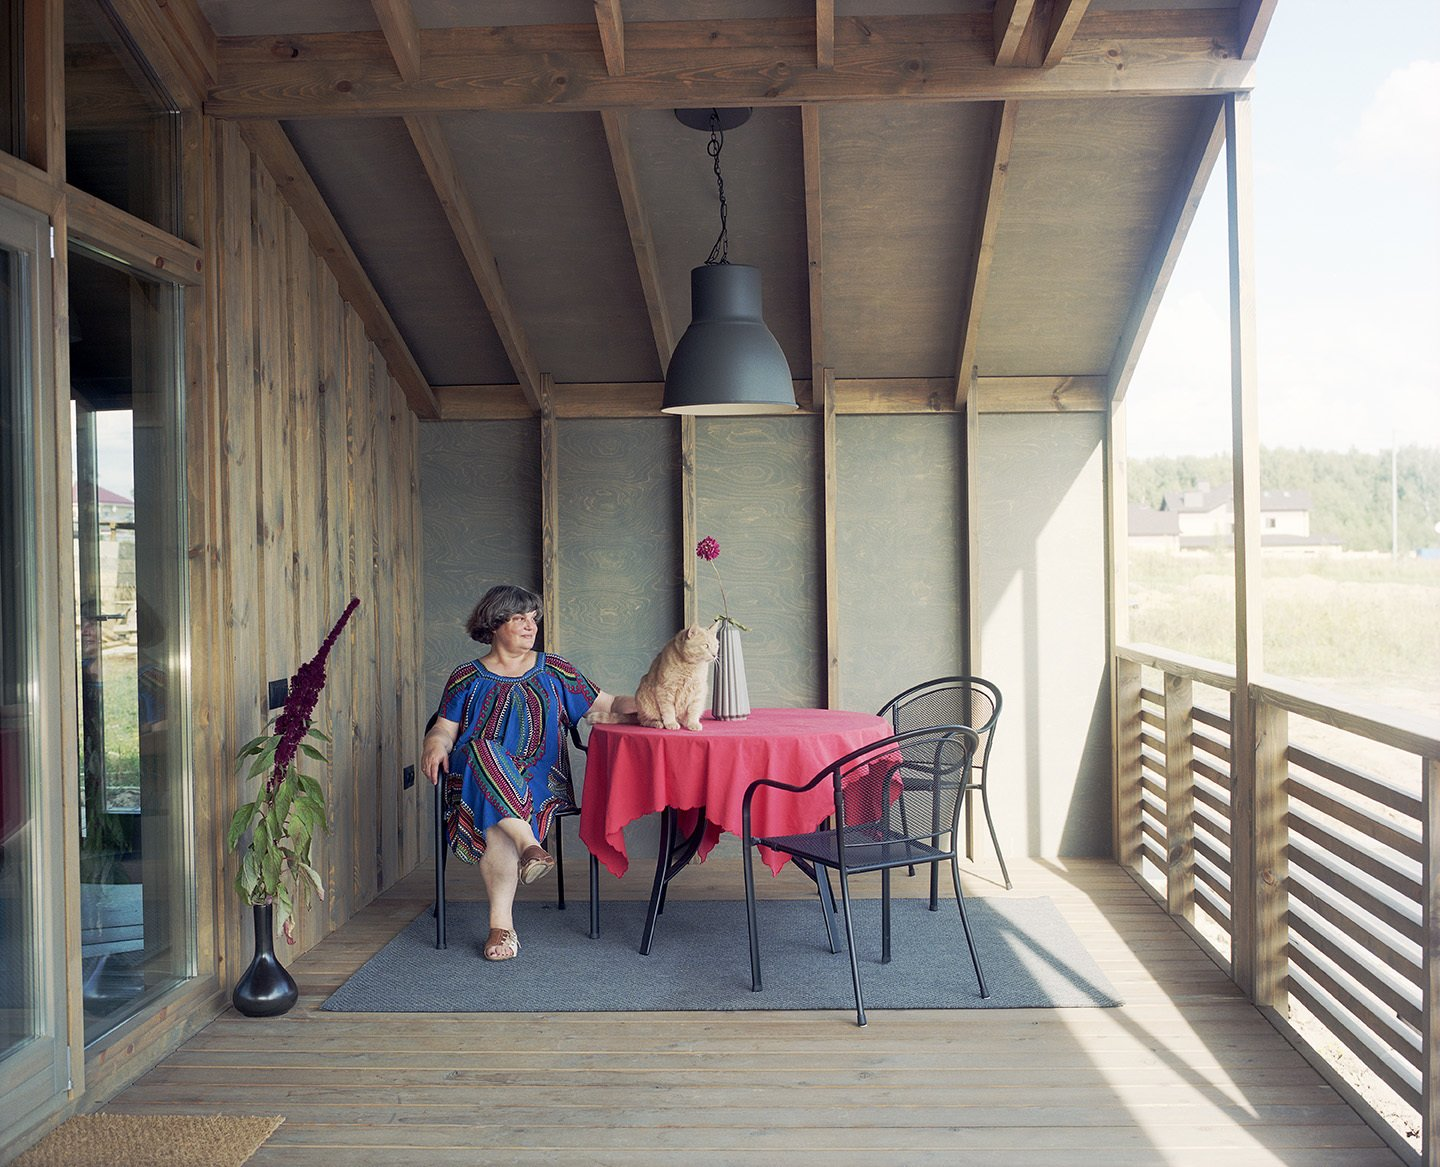 Anna's house is a version of the DublDom 2.87, which has a starting price of 2.87 million rubles (about $46,000). The structure features a porch at each end lined in stained plywood. Anna surveys the countryside from under the gabled roof. Seeing Double - Photo 3 of 8